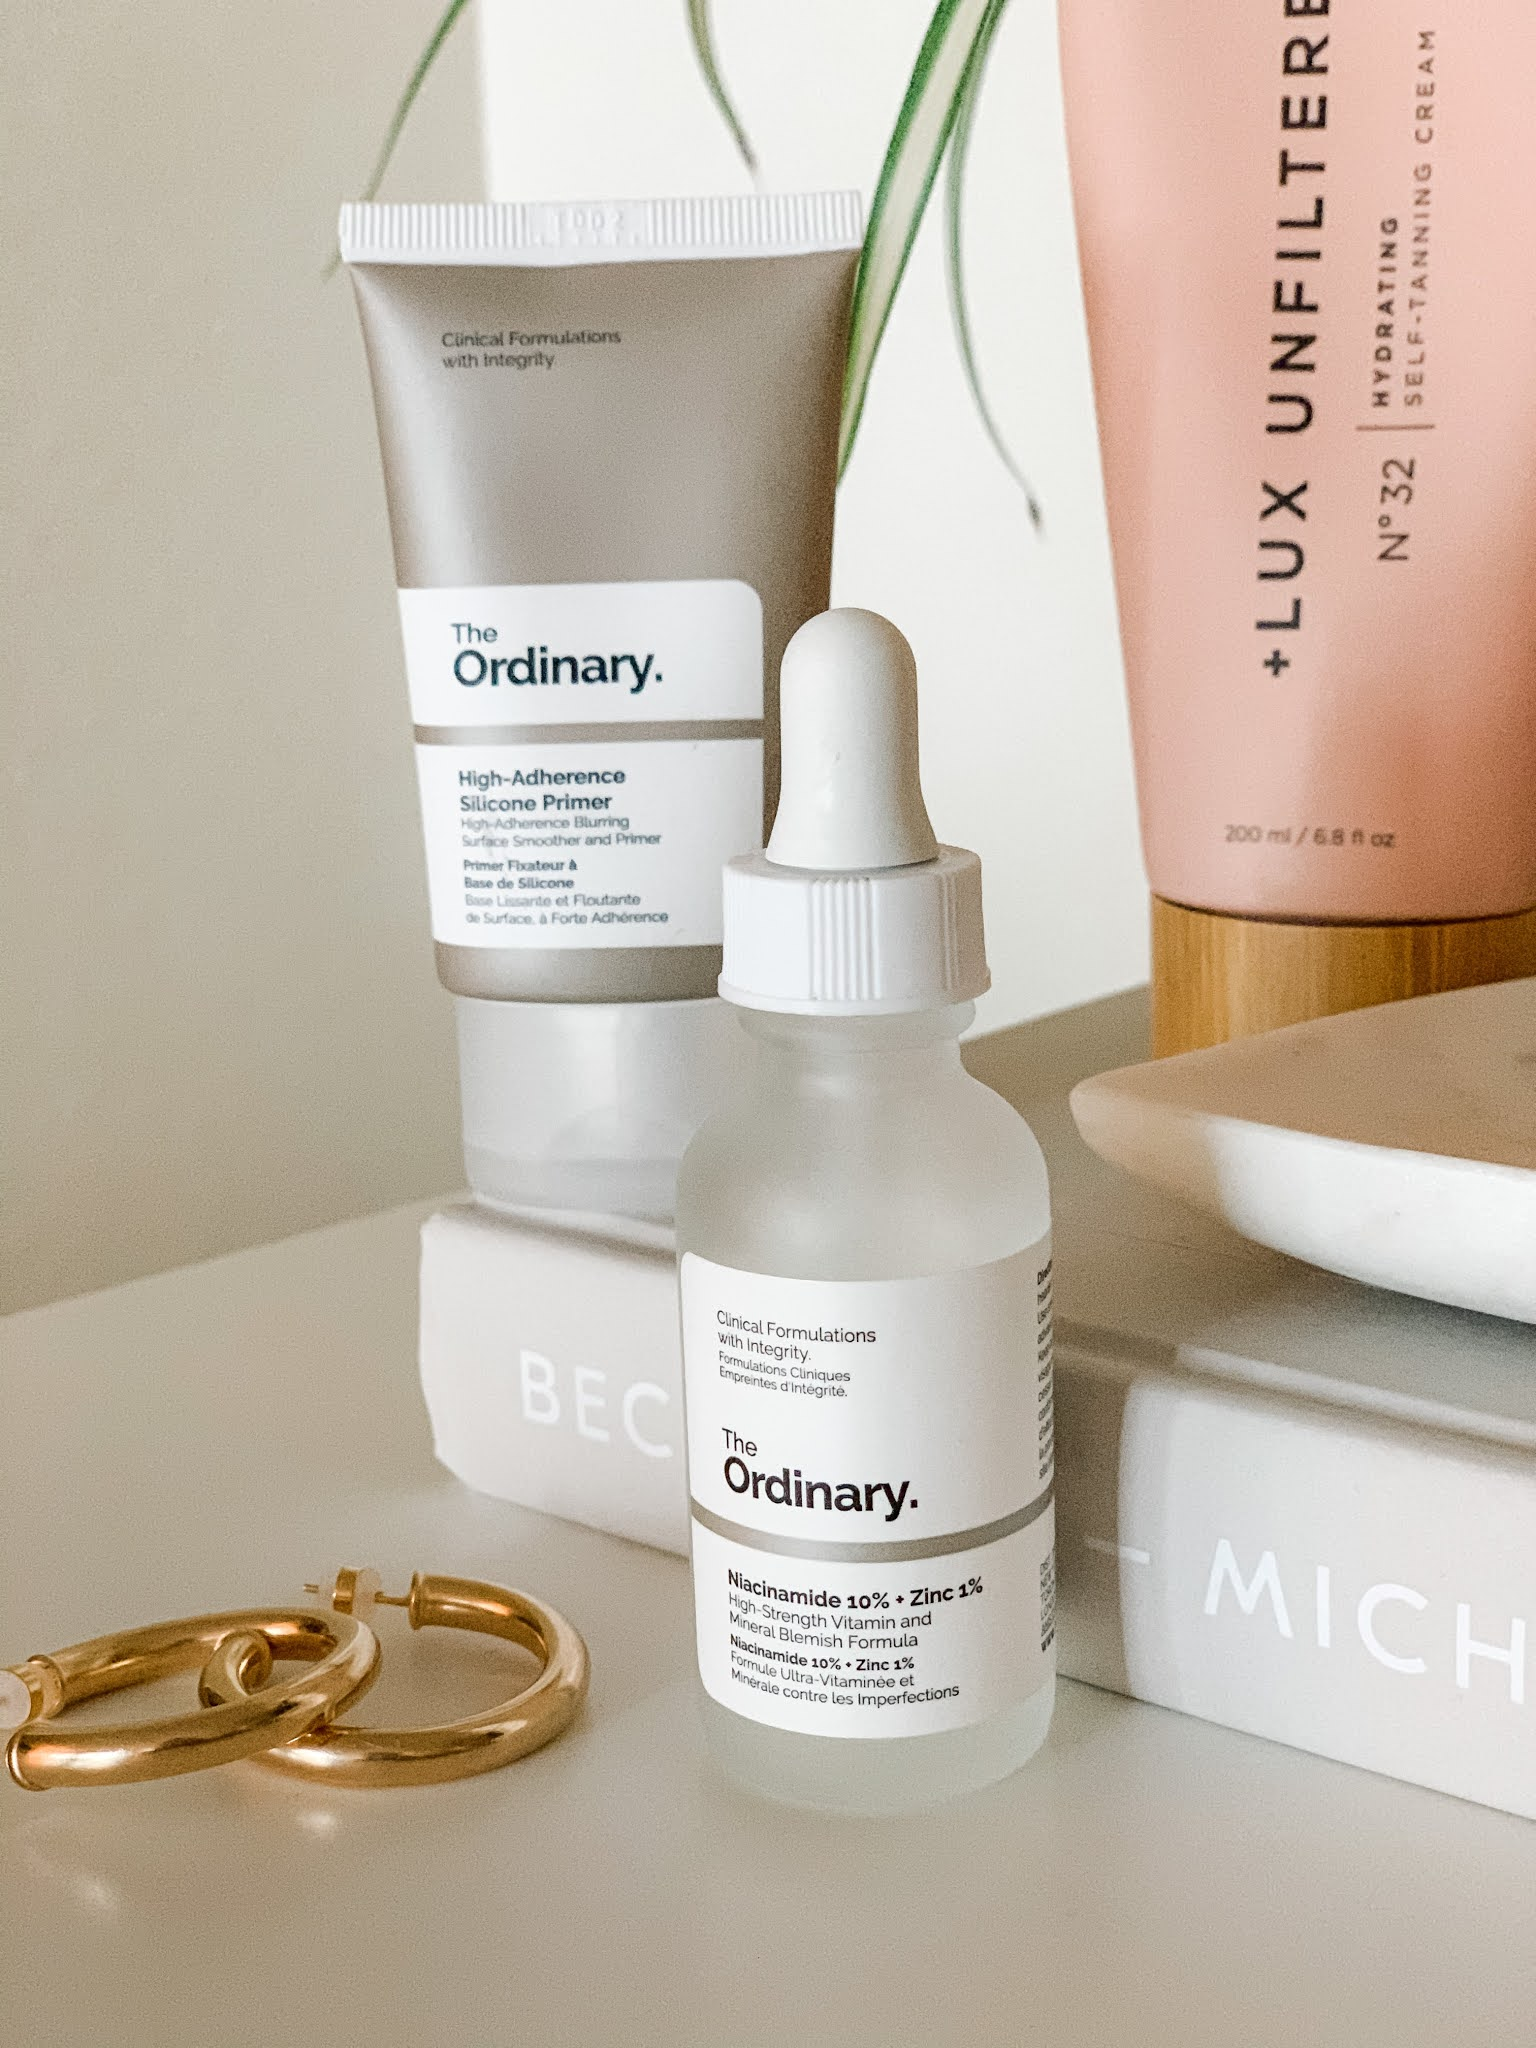 My favorite beauty products from The Ordinary